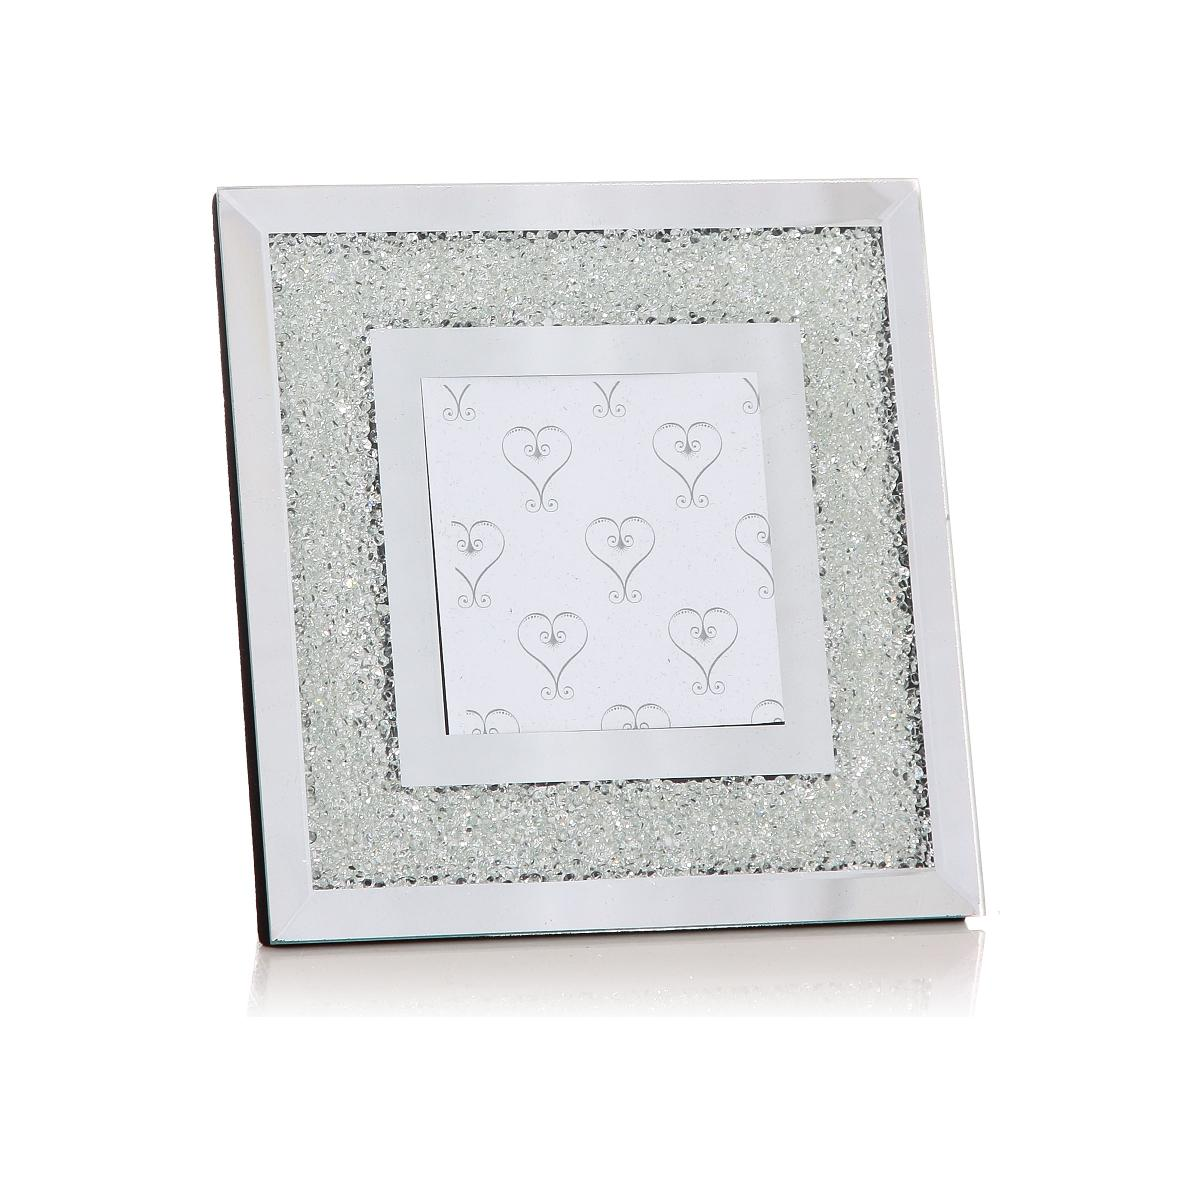 Swarovski picture frame - Lookup BeforeBuying